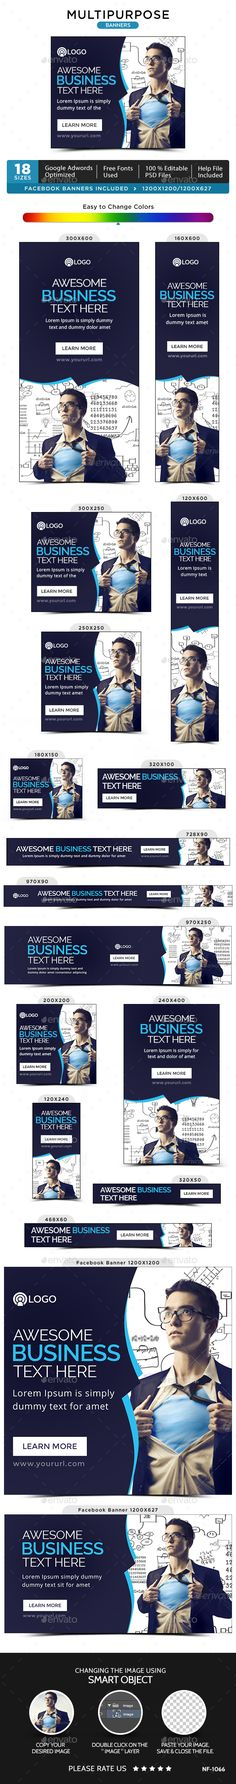 Multipurpose Web Banners Template PSD. Download here: http://graphicriver.net/item/multipurpose-banners/14844415?ref=ksioks